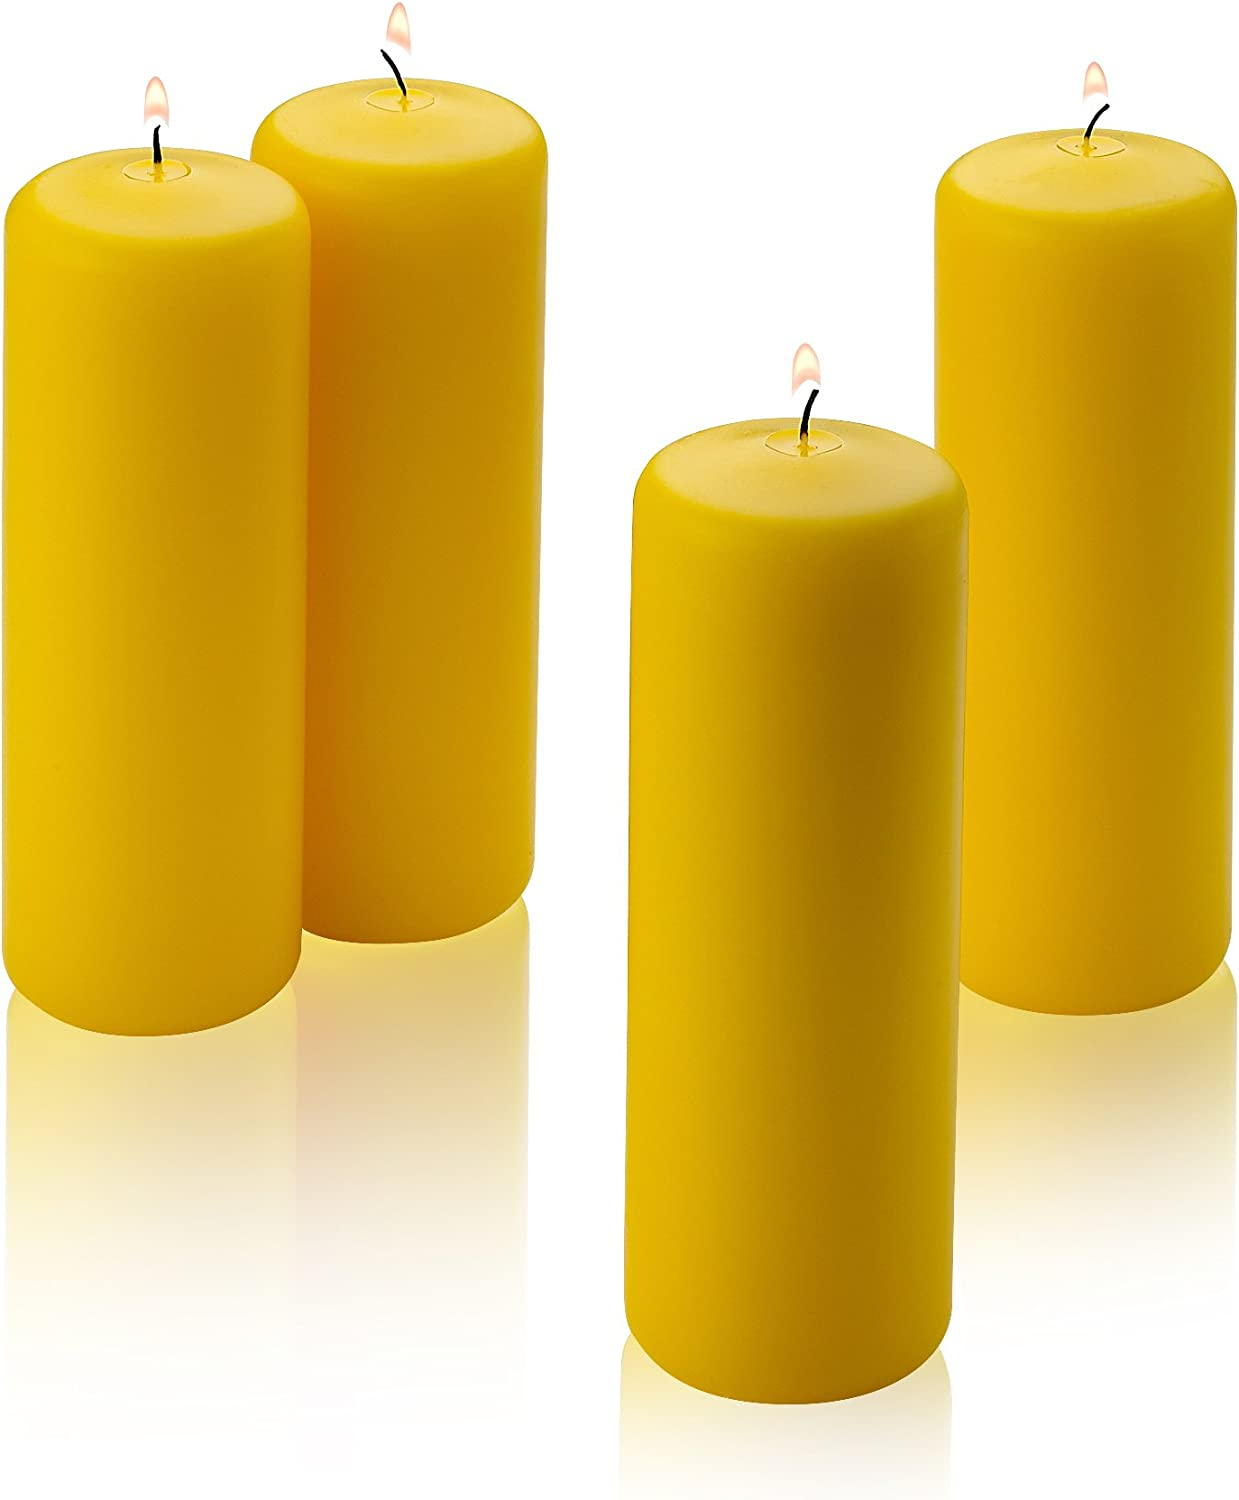 4 Citronella Scented Pillar Candles 2  Inch Wide X 6  Tall